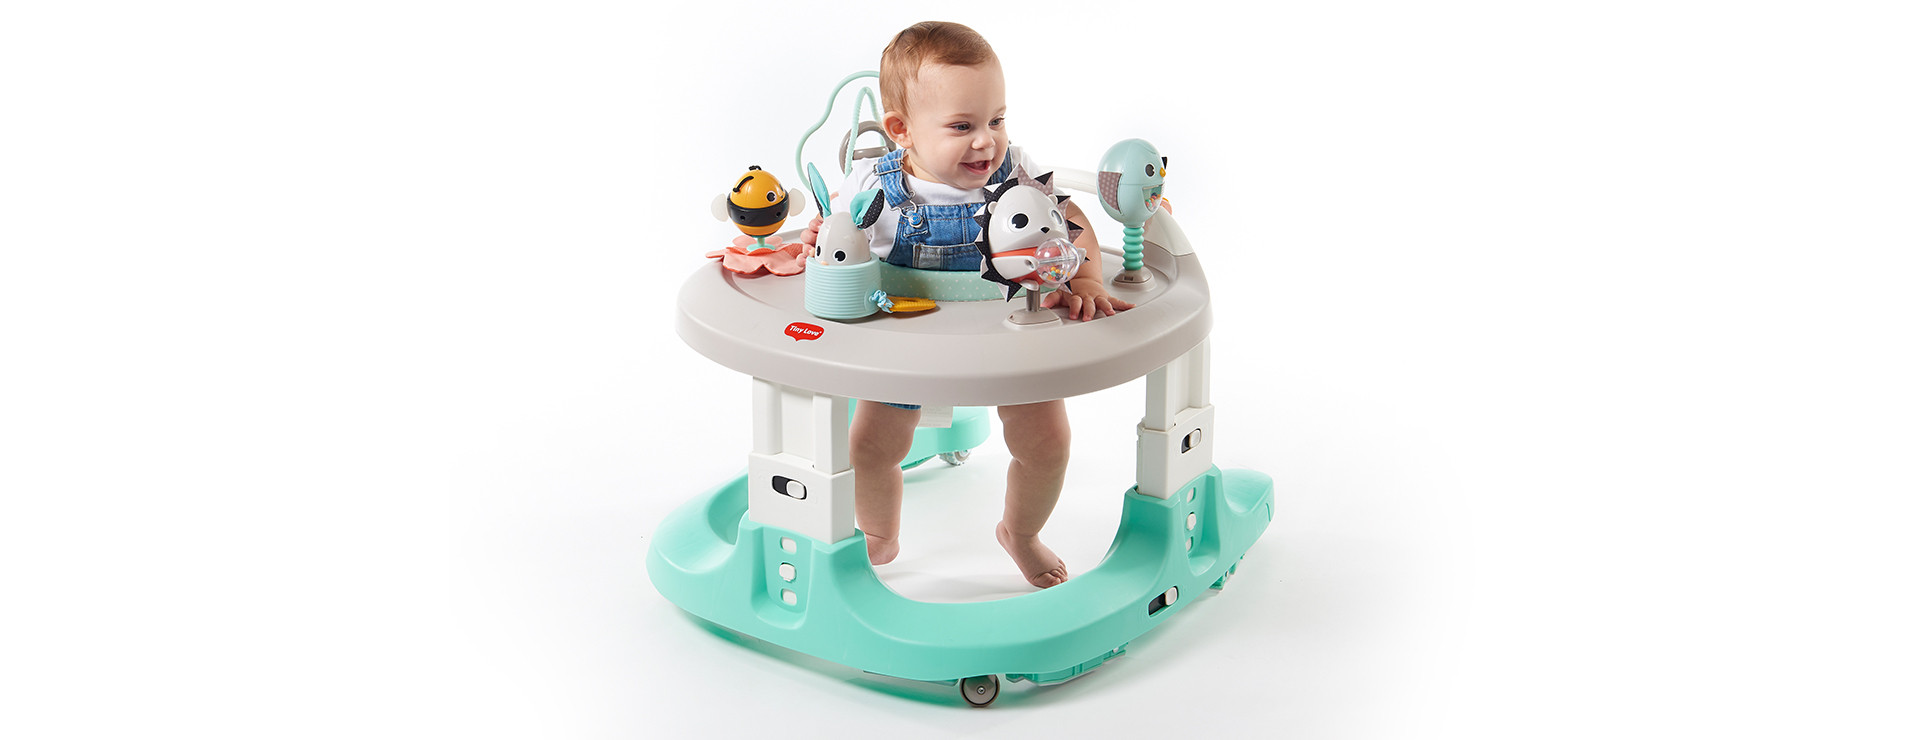 4-in-1 mobile activity center with multiple modes to grow with your baby